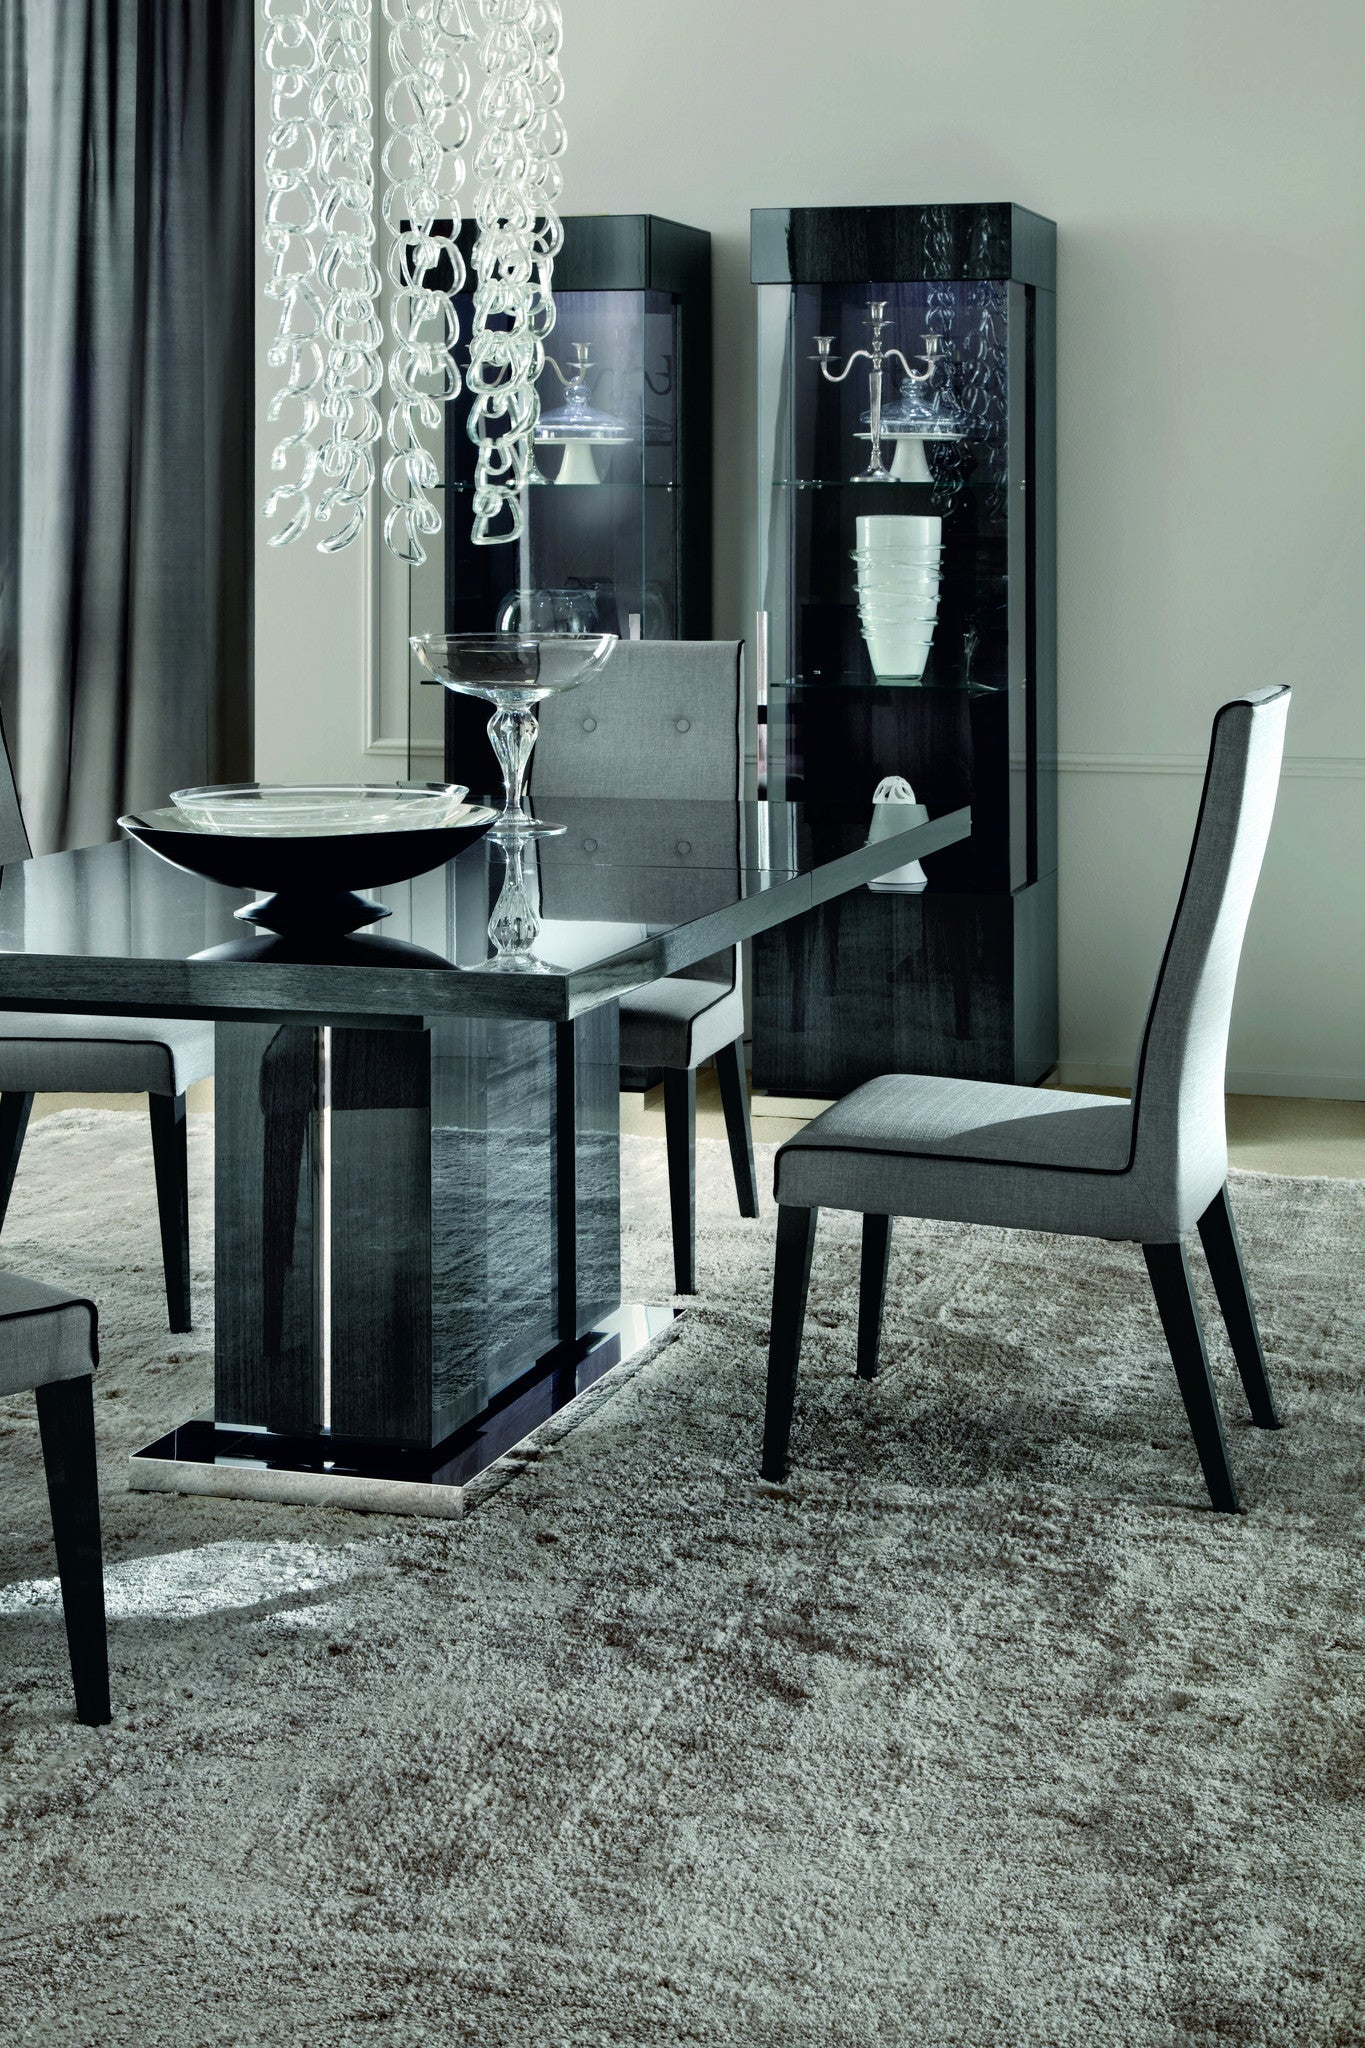 Bon Dining Room, Soprano 5 Piece Dining Room Set : Huffman Koos Furniture ...